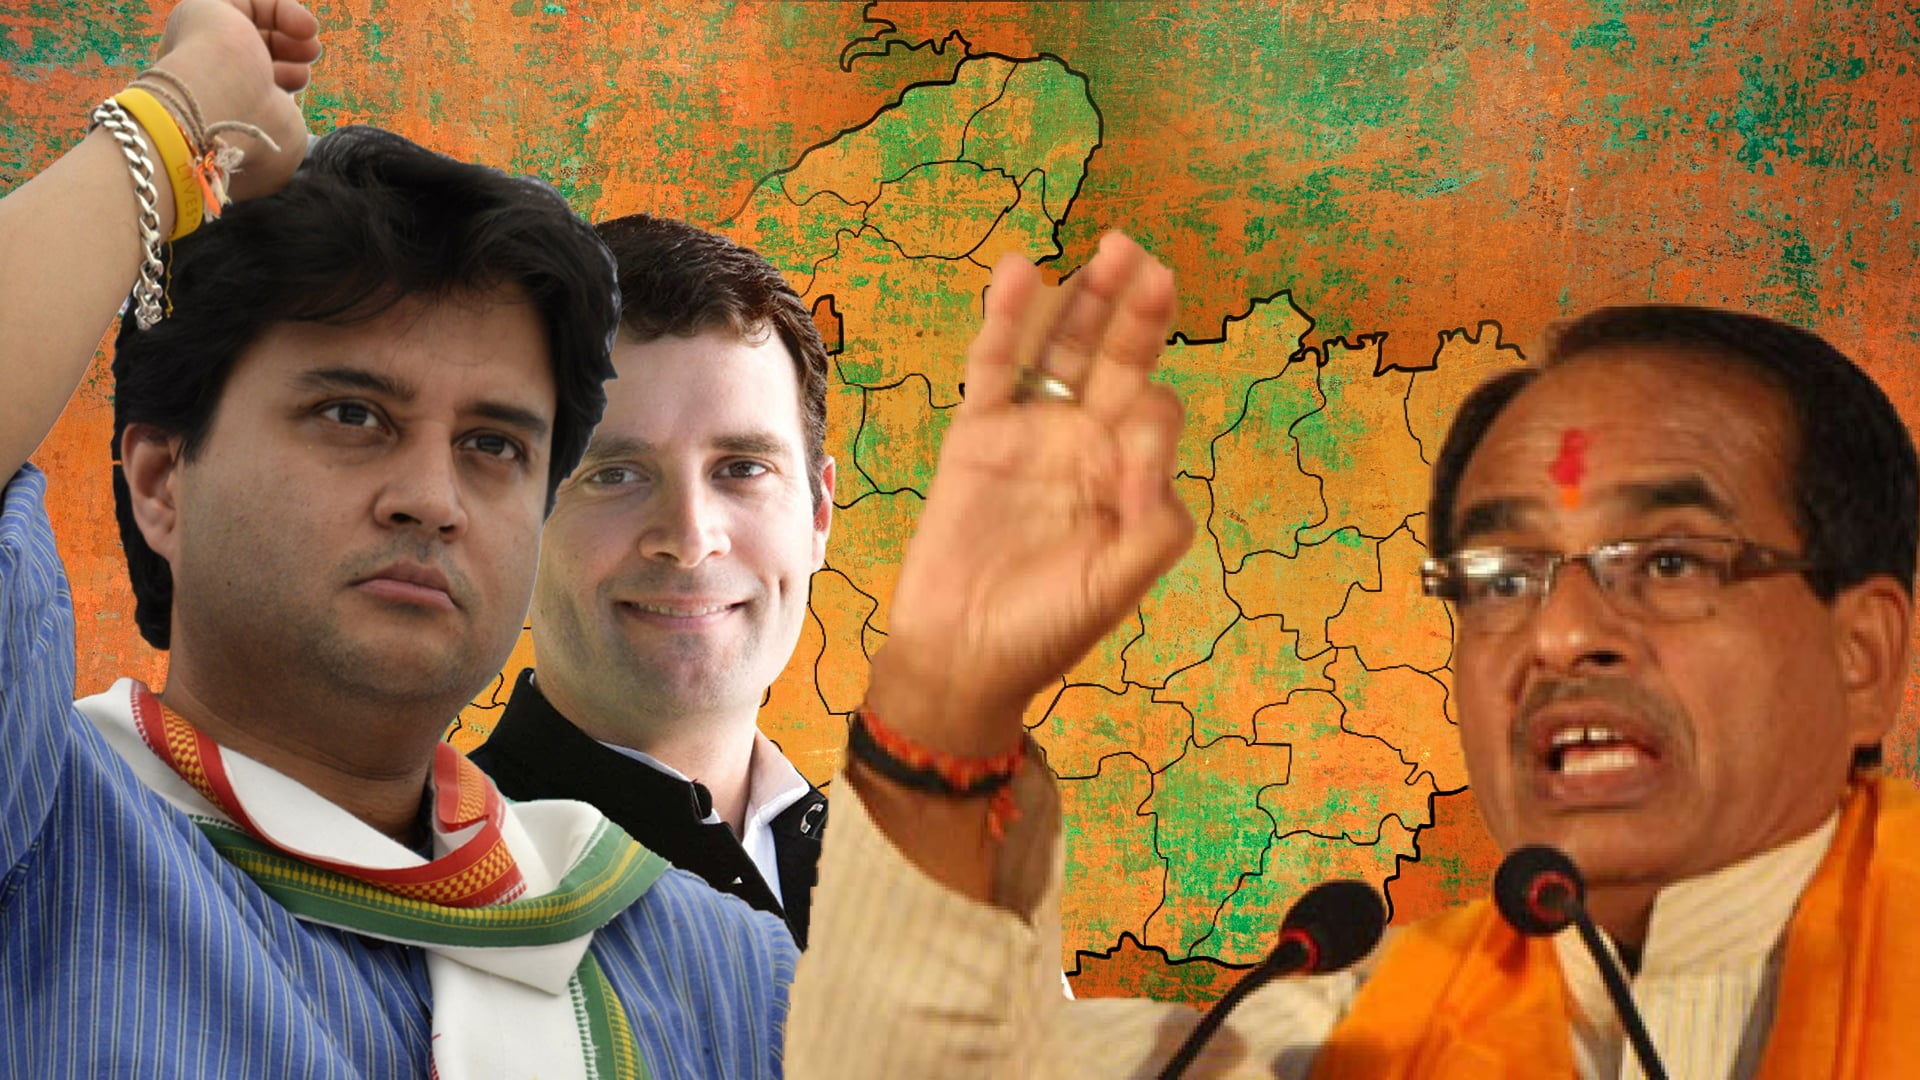 MP pre poll election survey predicts congress-bsp alliance could trouble BJP